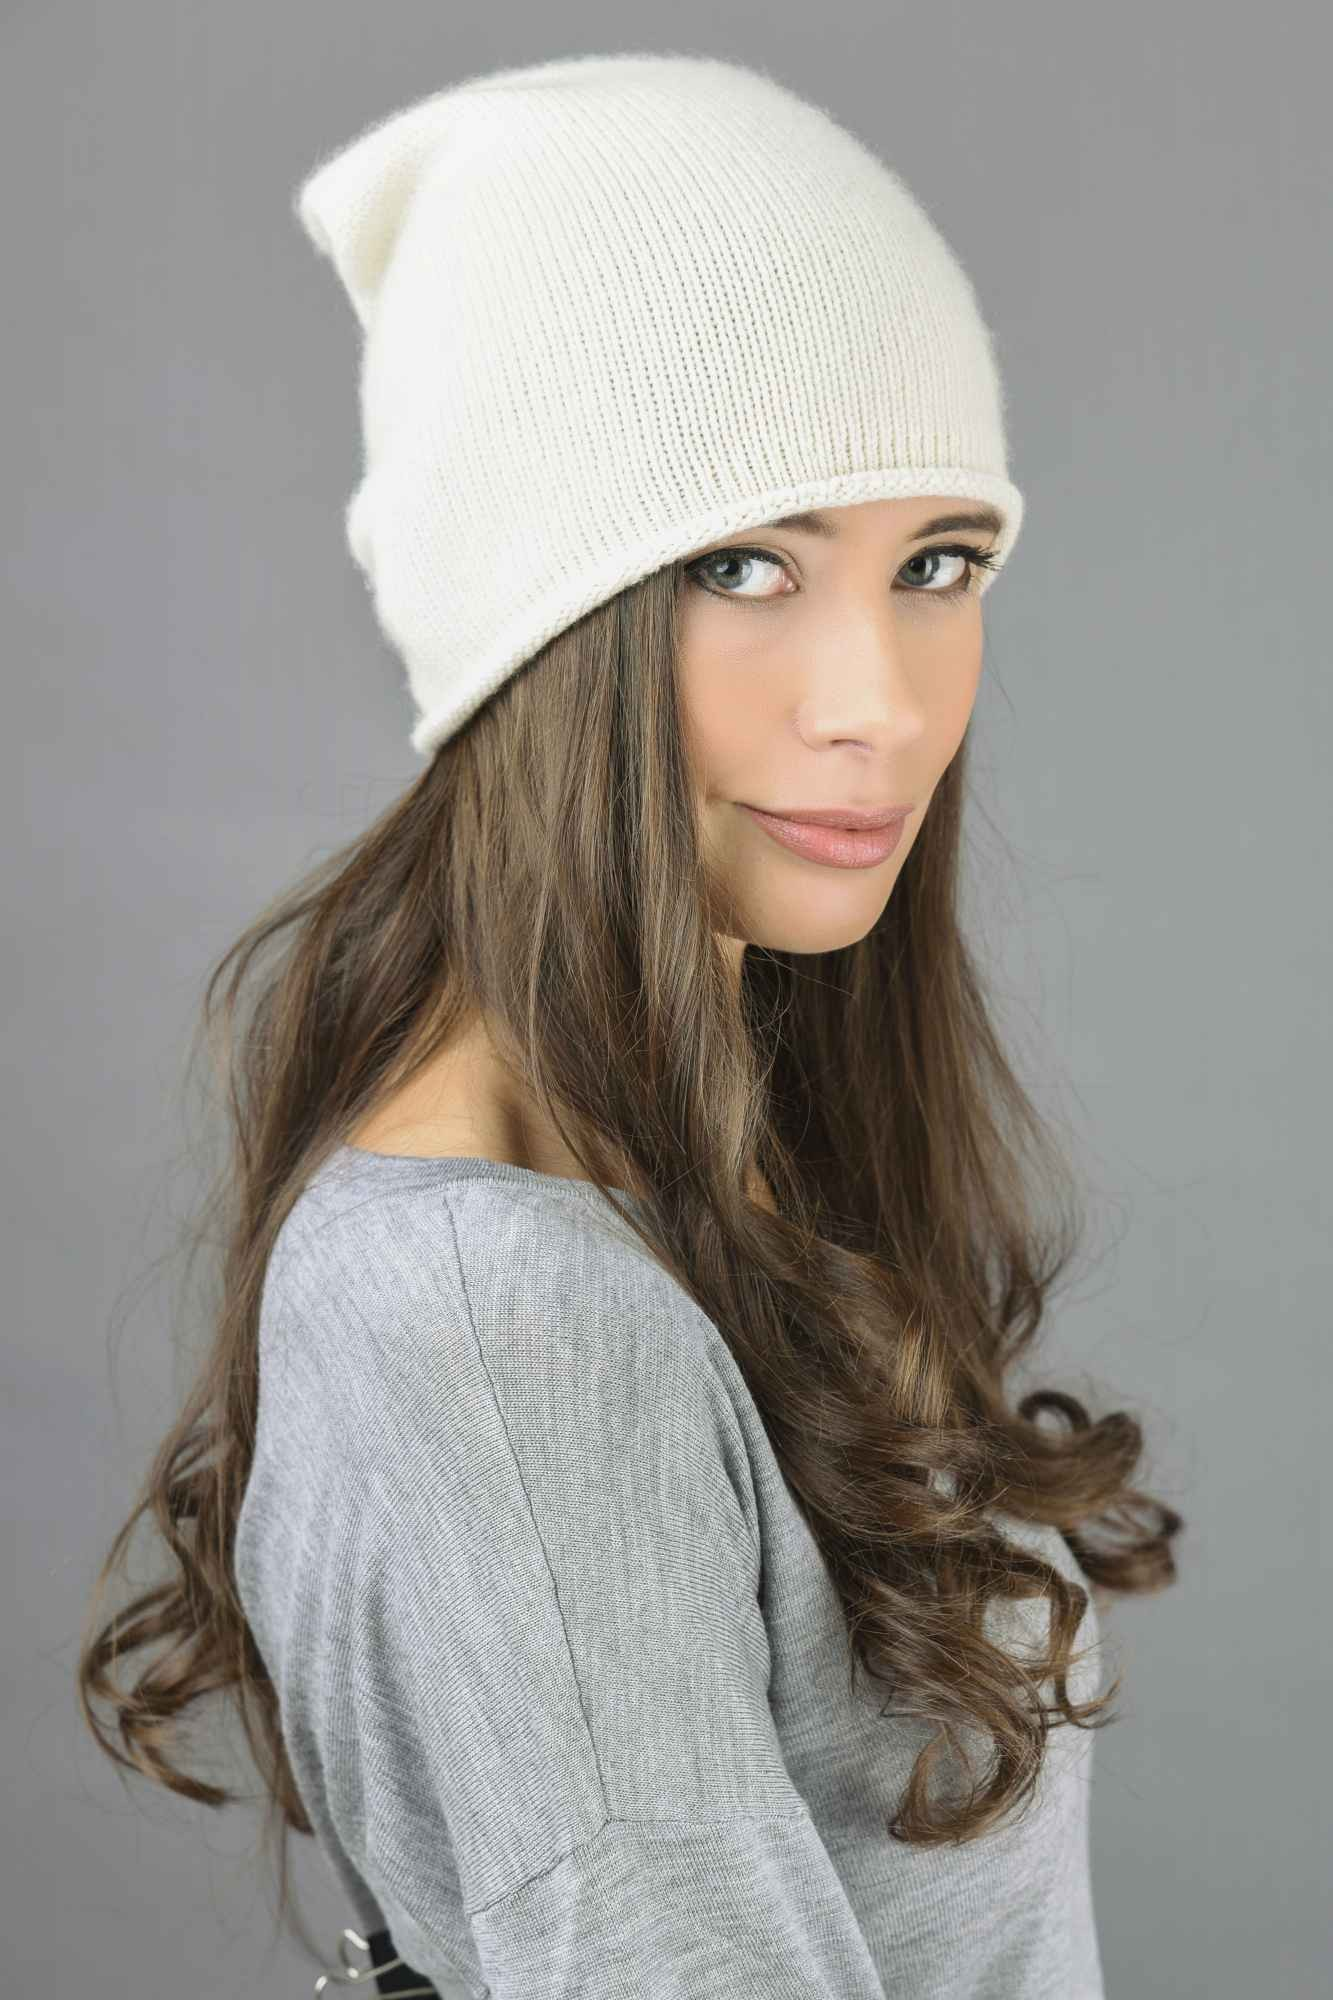 Pure Cashmere Plain Knitted Slouchy Beanie Hat in Cream White ... 72c35119c75